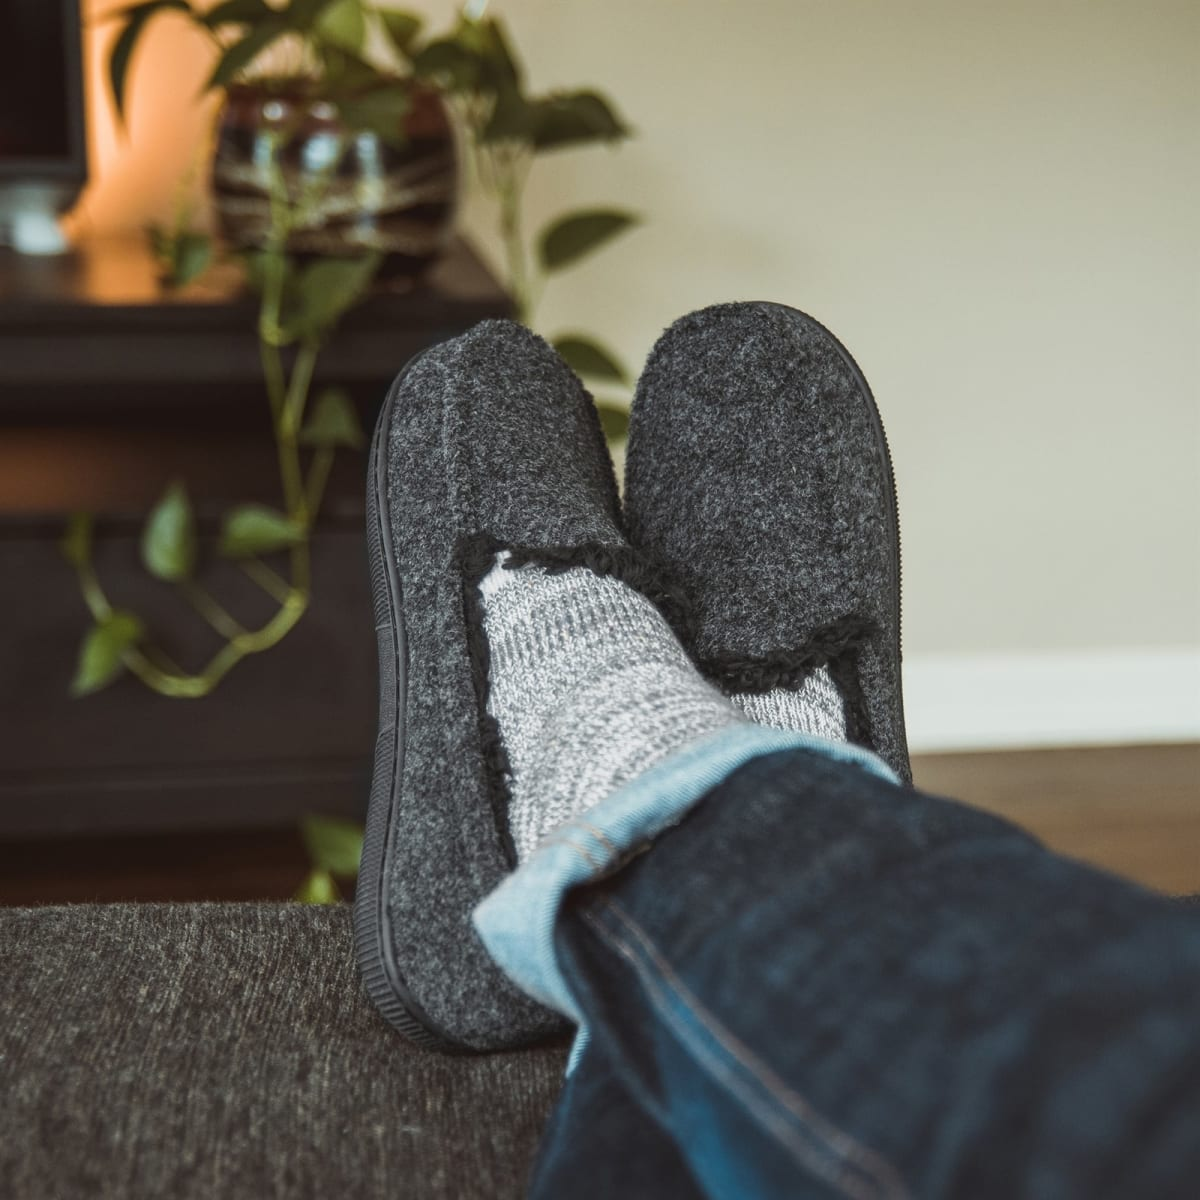 MUK LUKS Men's Moccasin Slippers Only $13.99 + FREE Shipping!